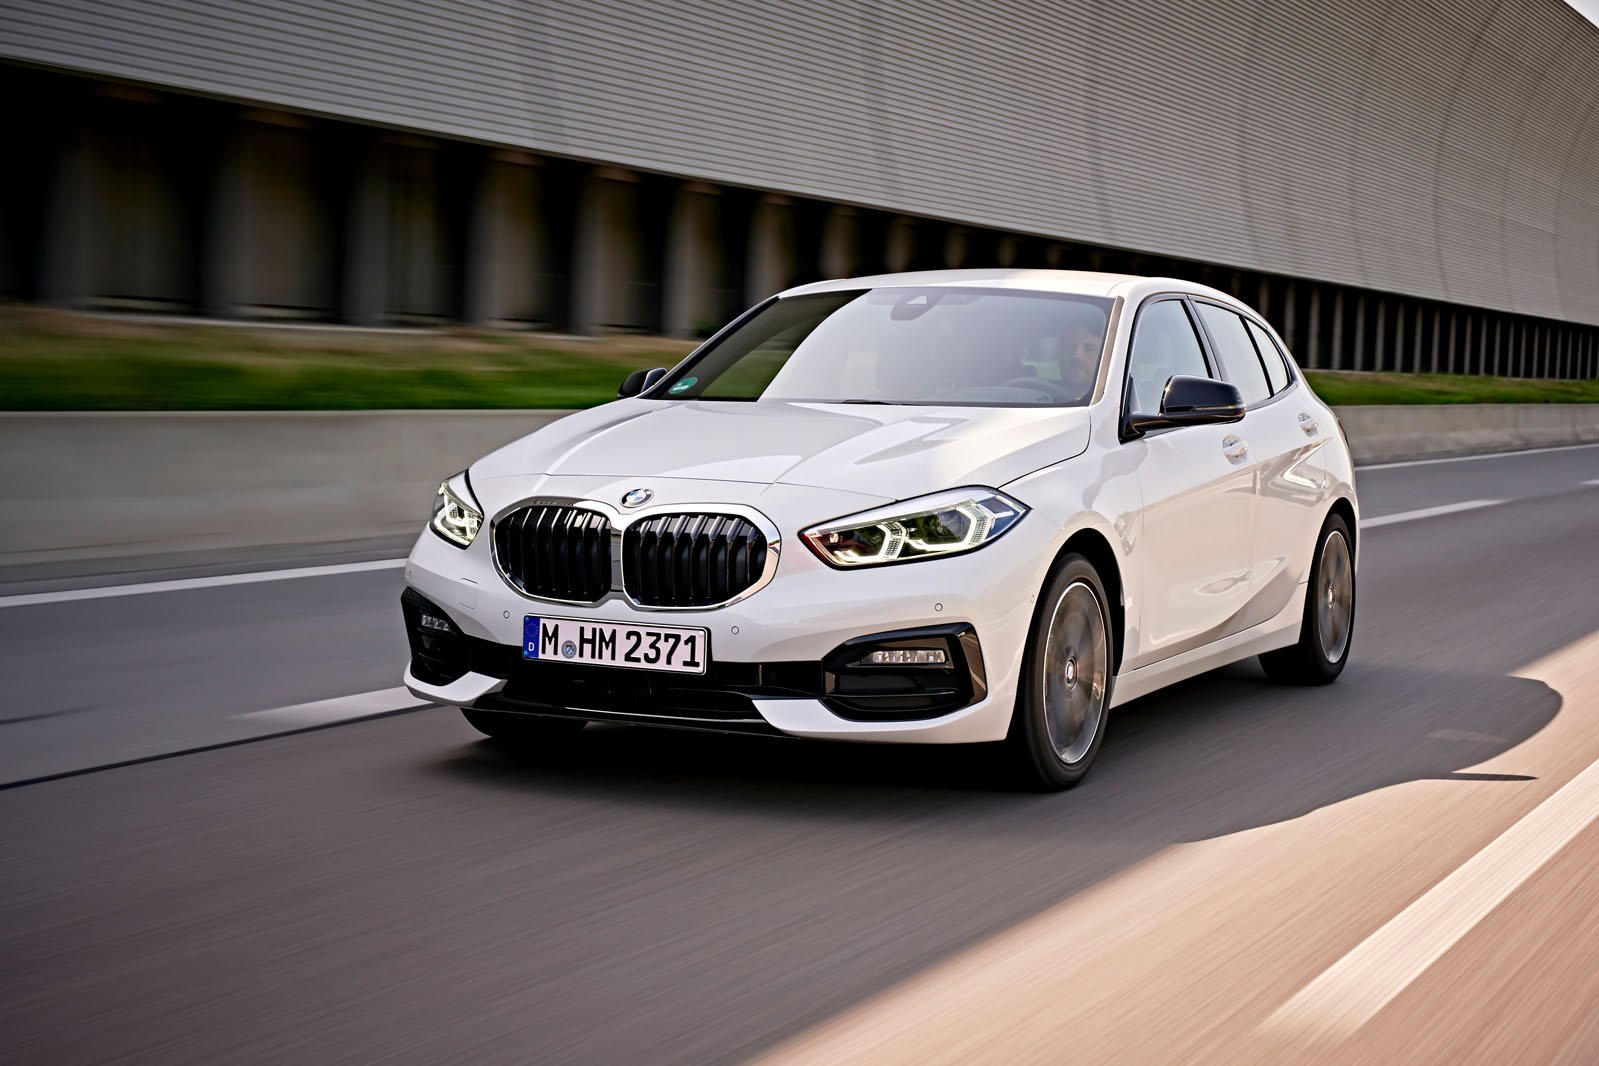 BMW 1 Series 2019 LHD front left tracking